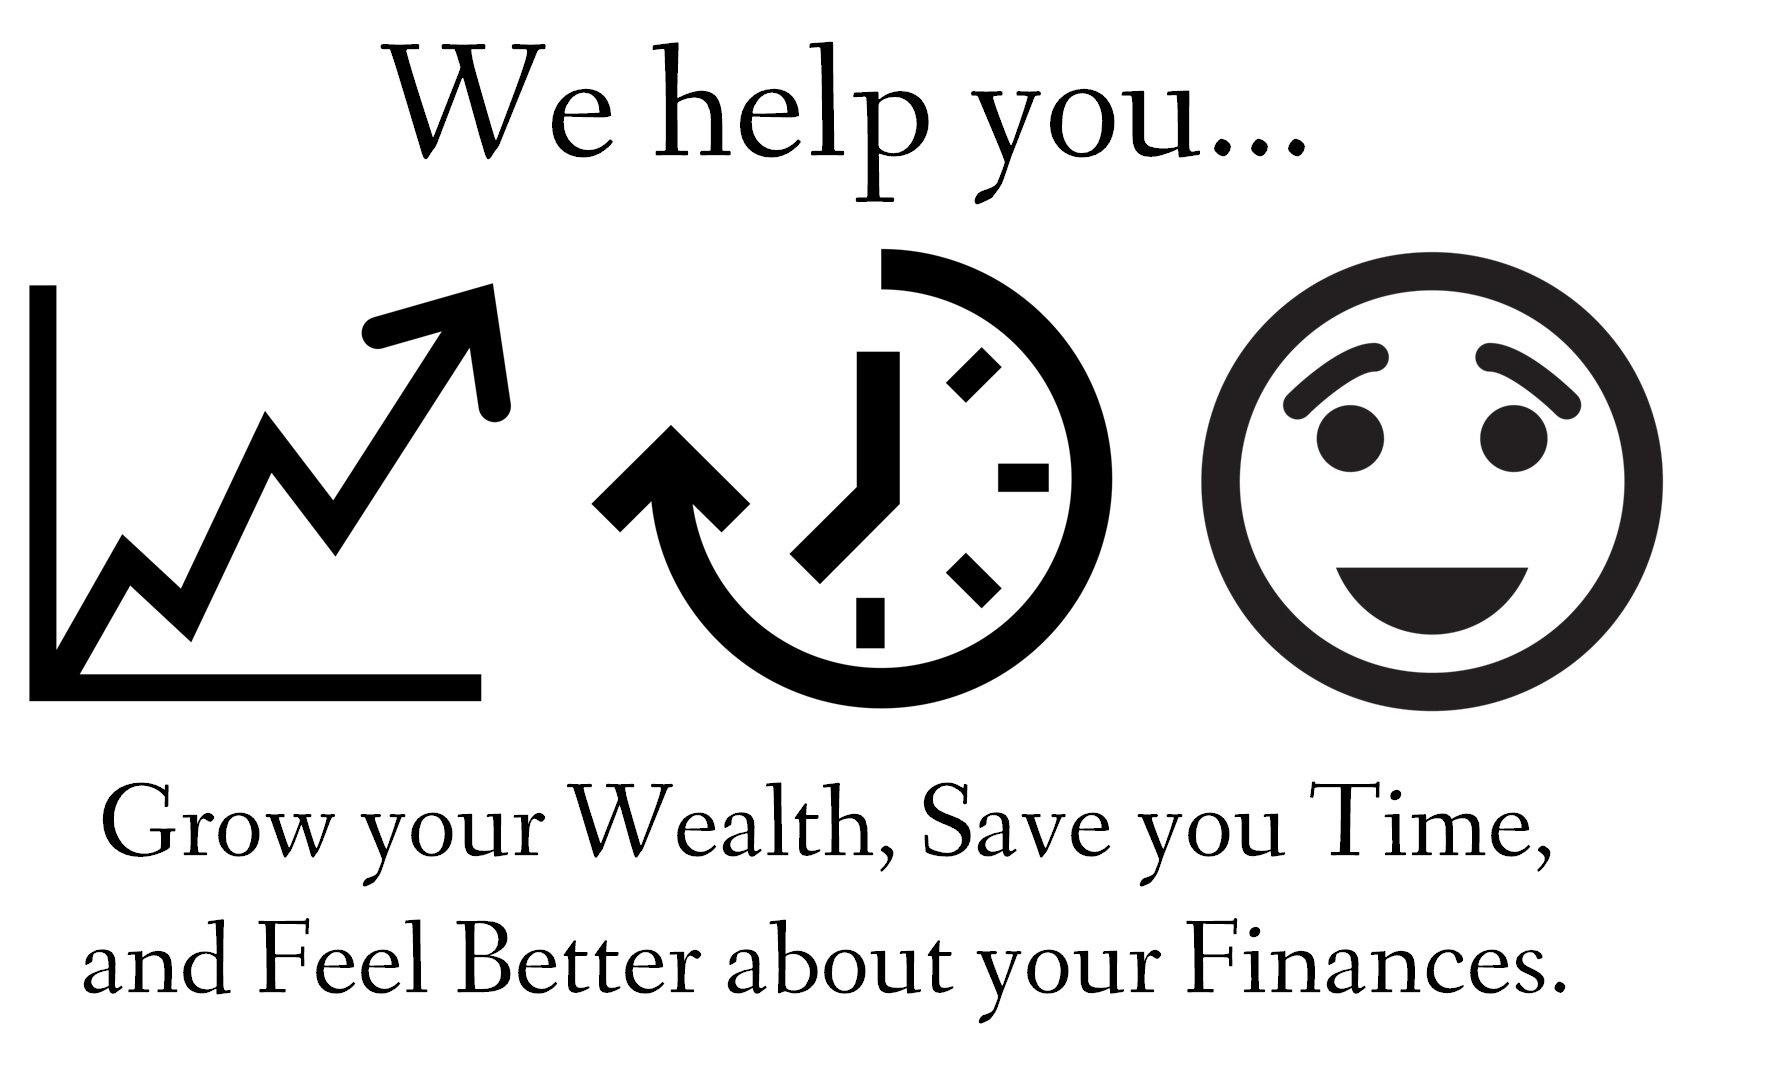 How_we_help_you_wealth_management.jpg